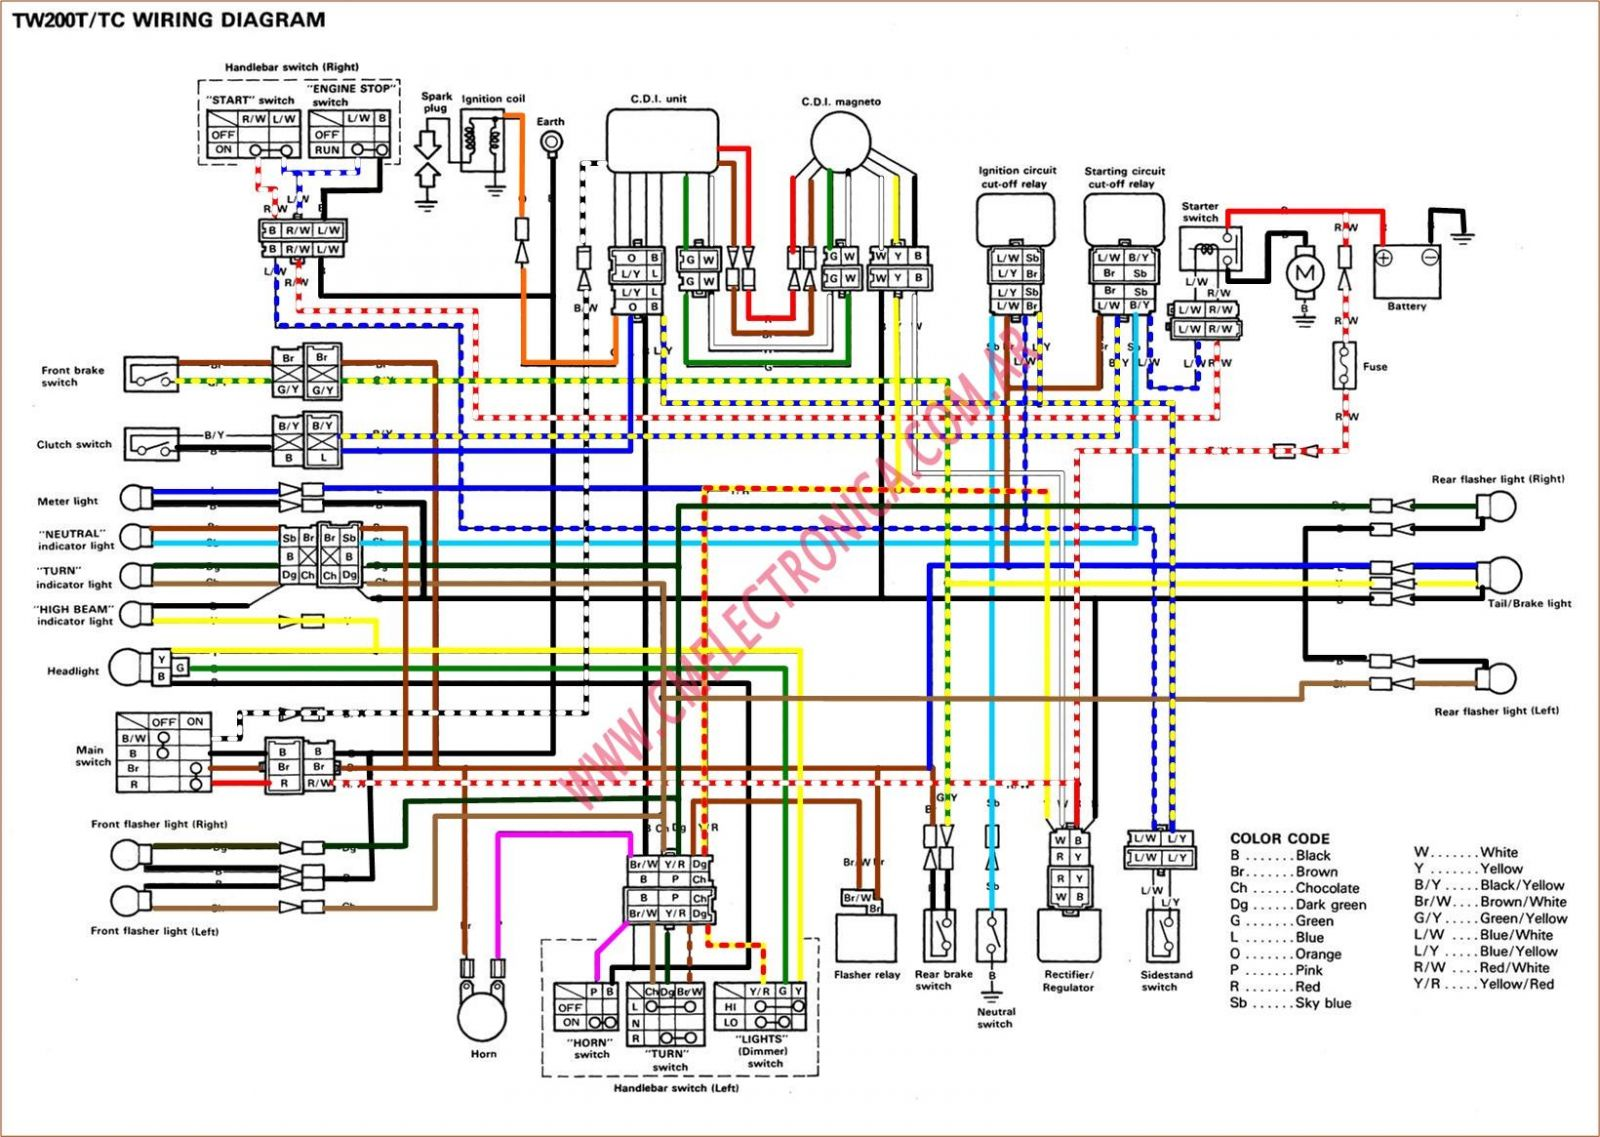 Colored wiring diagram | Page 2 | TW200 Forum | Tw200 Wiring Diagram |  | TW200 Forum